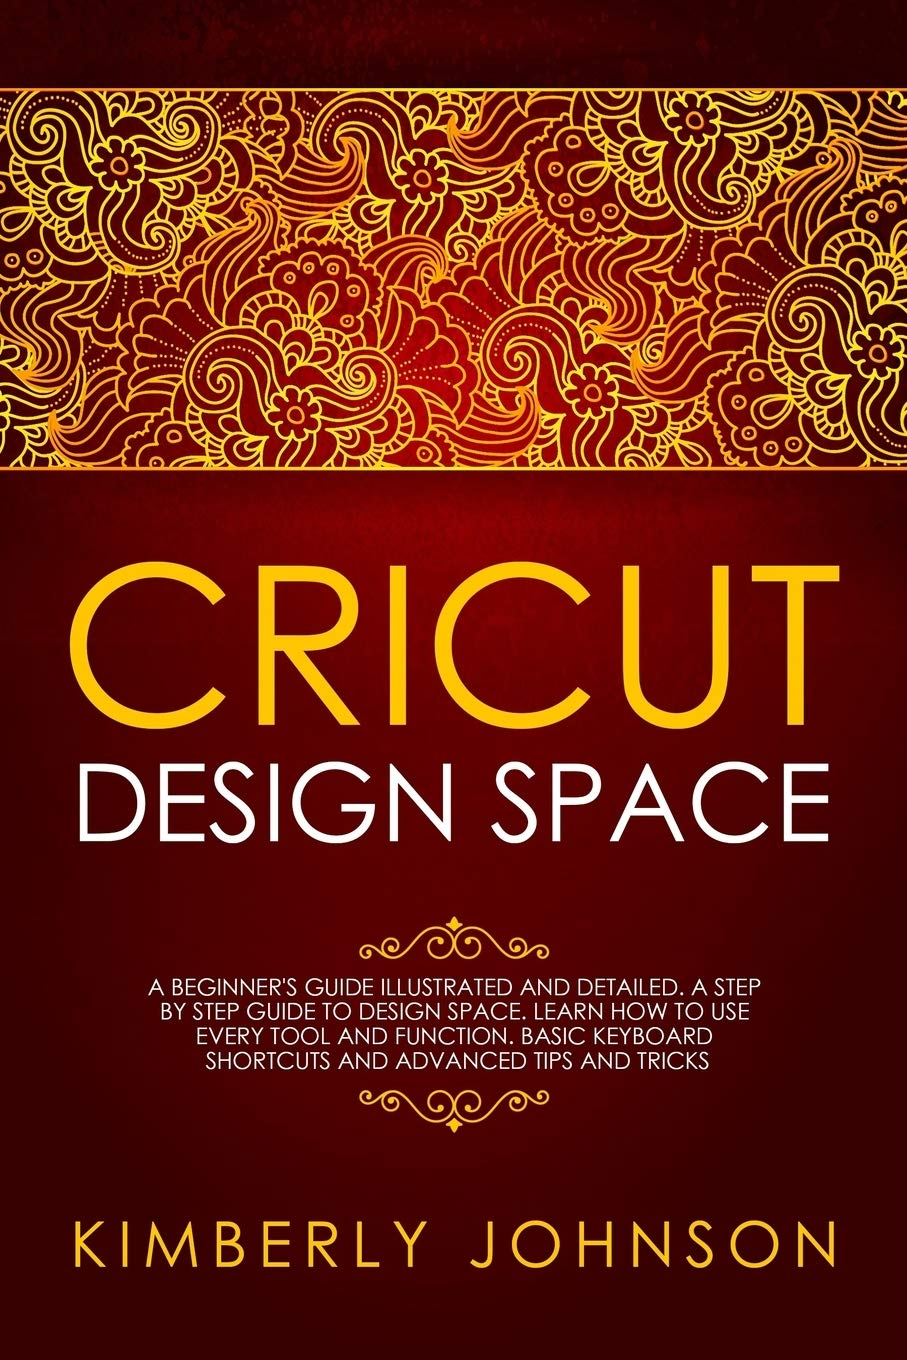 Cricut Design Space A Beginner S Guide Illustrated And Detailed A Step By Step Guide To Design Space And Use Every Tool And Function Basic Keyboard Shortcuts And Advanced Tips And Tricks Johnson